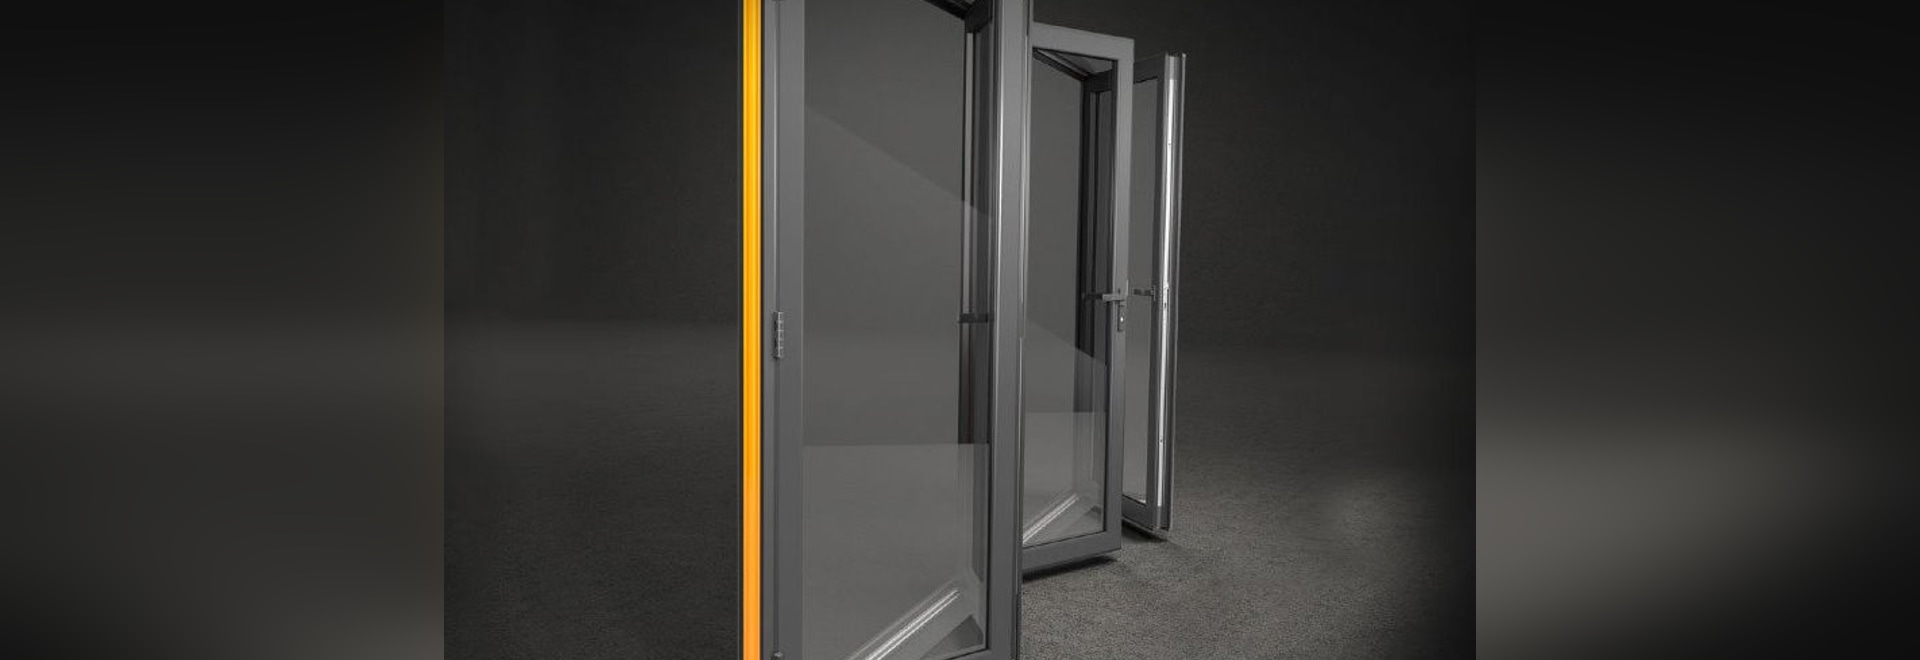 NEW sliding door by Synseal Extrusions & NEW: sliding door by Synseal Extrusions - Synseal Extrusions